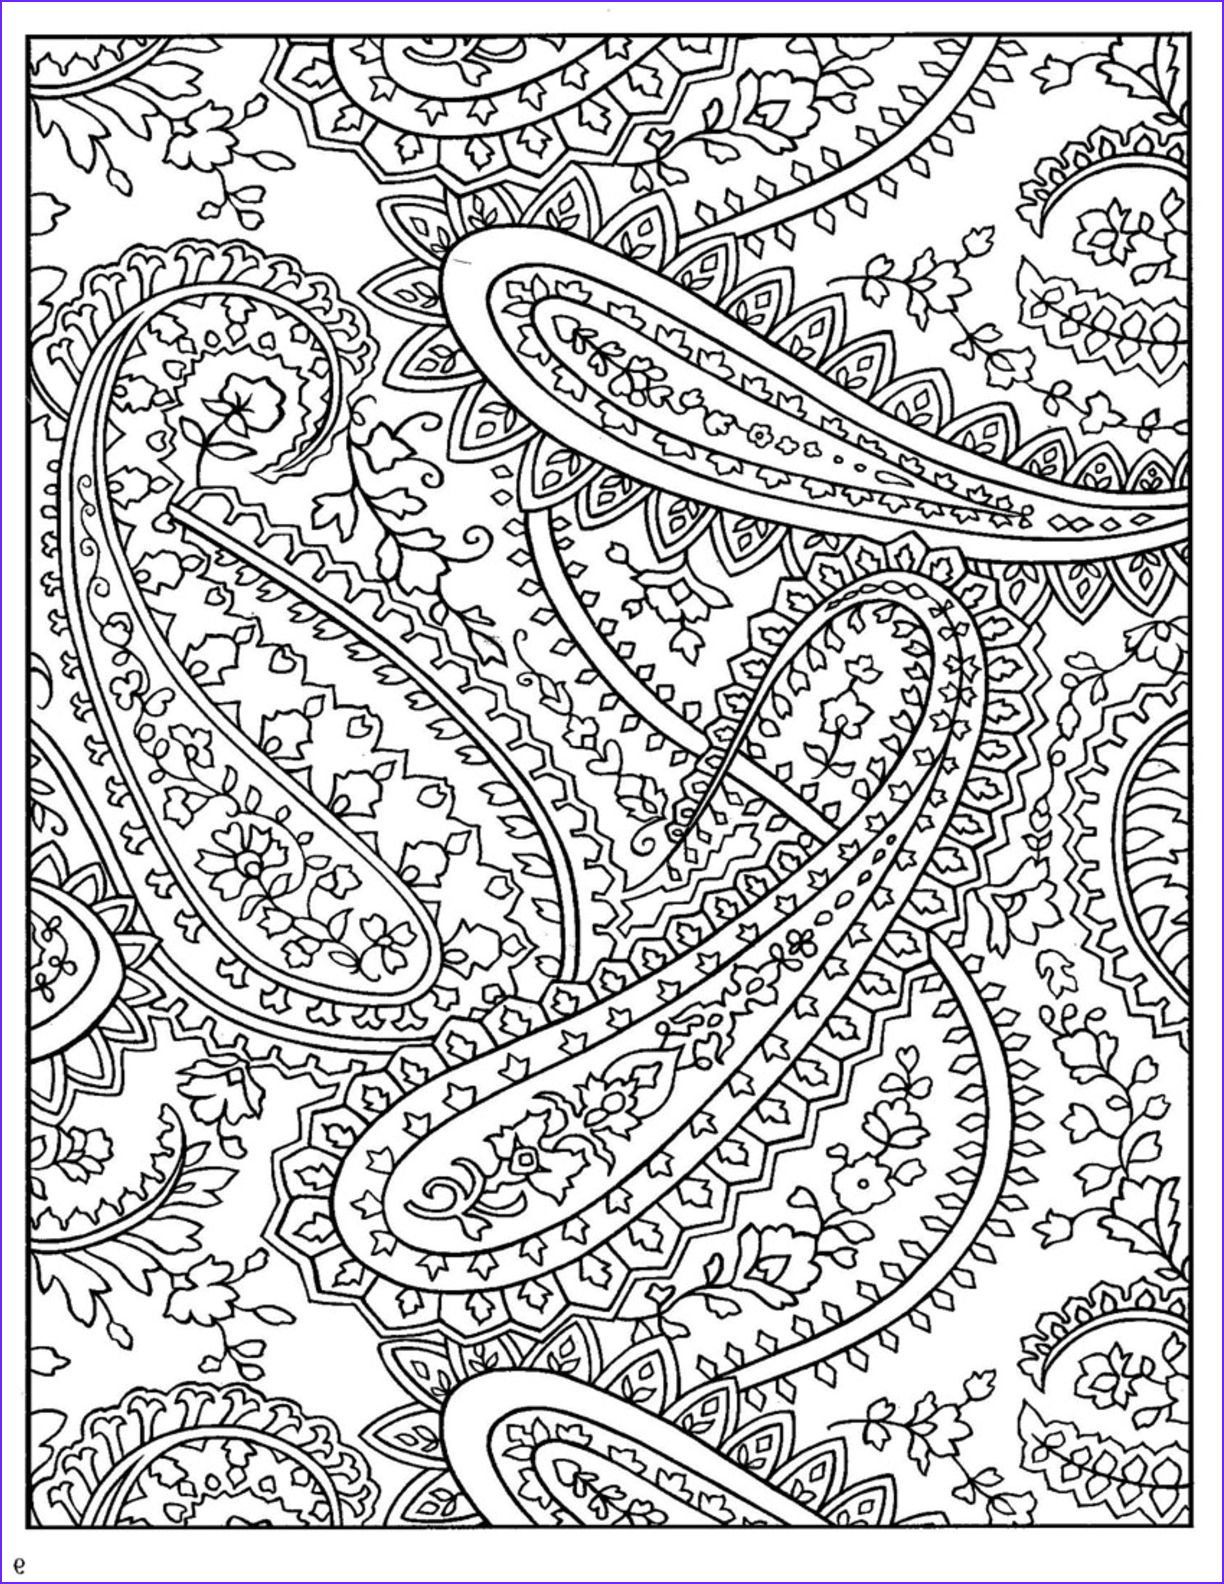 Paisley Coloring Books Best Of Images Dover Paisley Designs Coloring Book